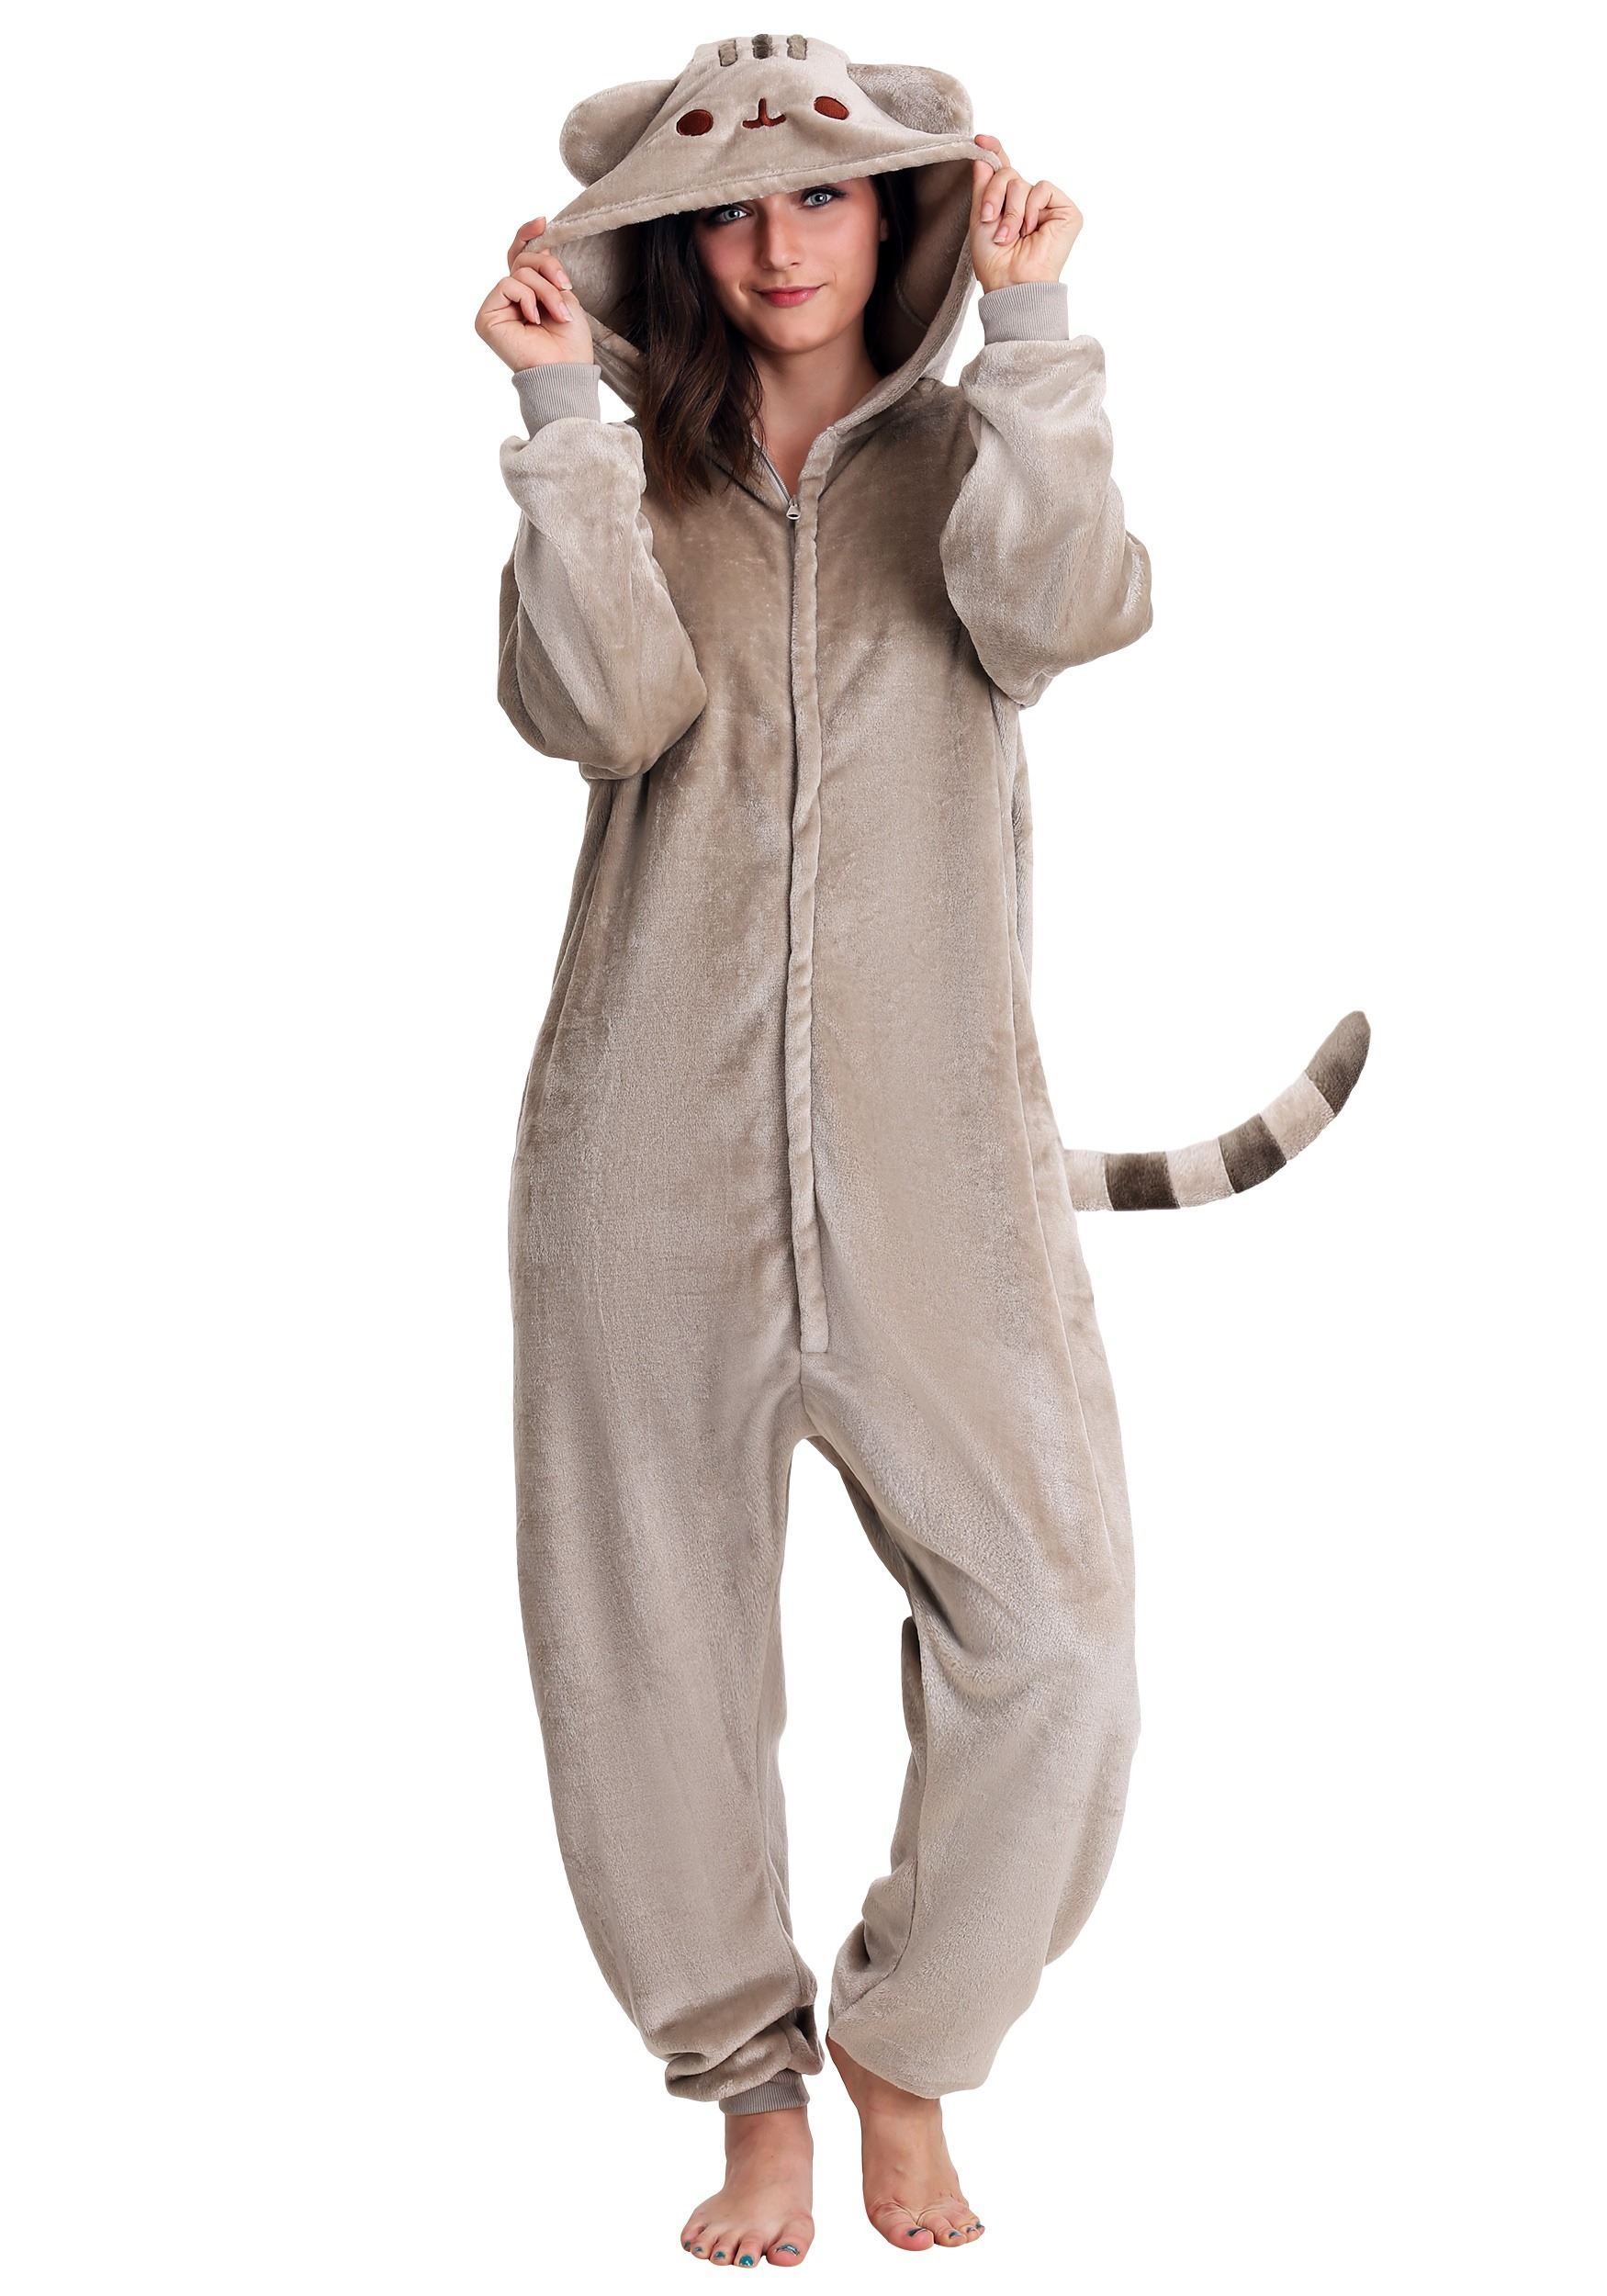 Adult Pusheen Cat Kigurumi Costume-update1  sc 1 st  Halloween Costumes & Pusheen Cat Kigurumi Costume for Adults